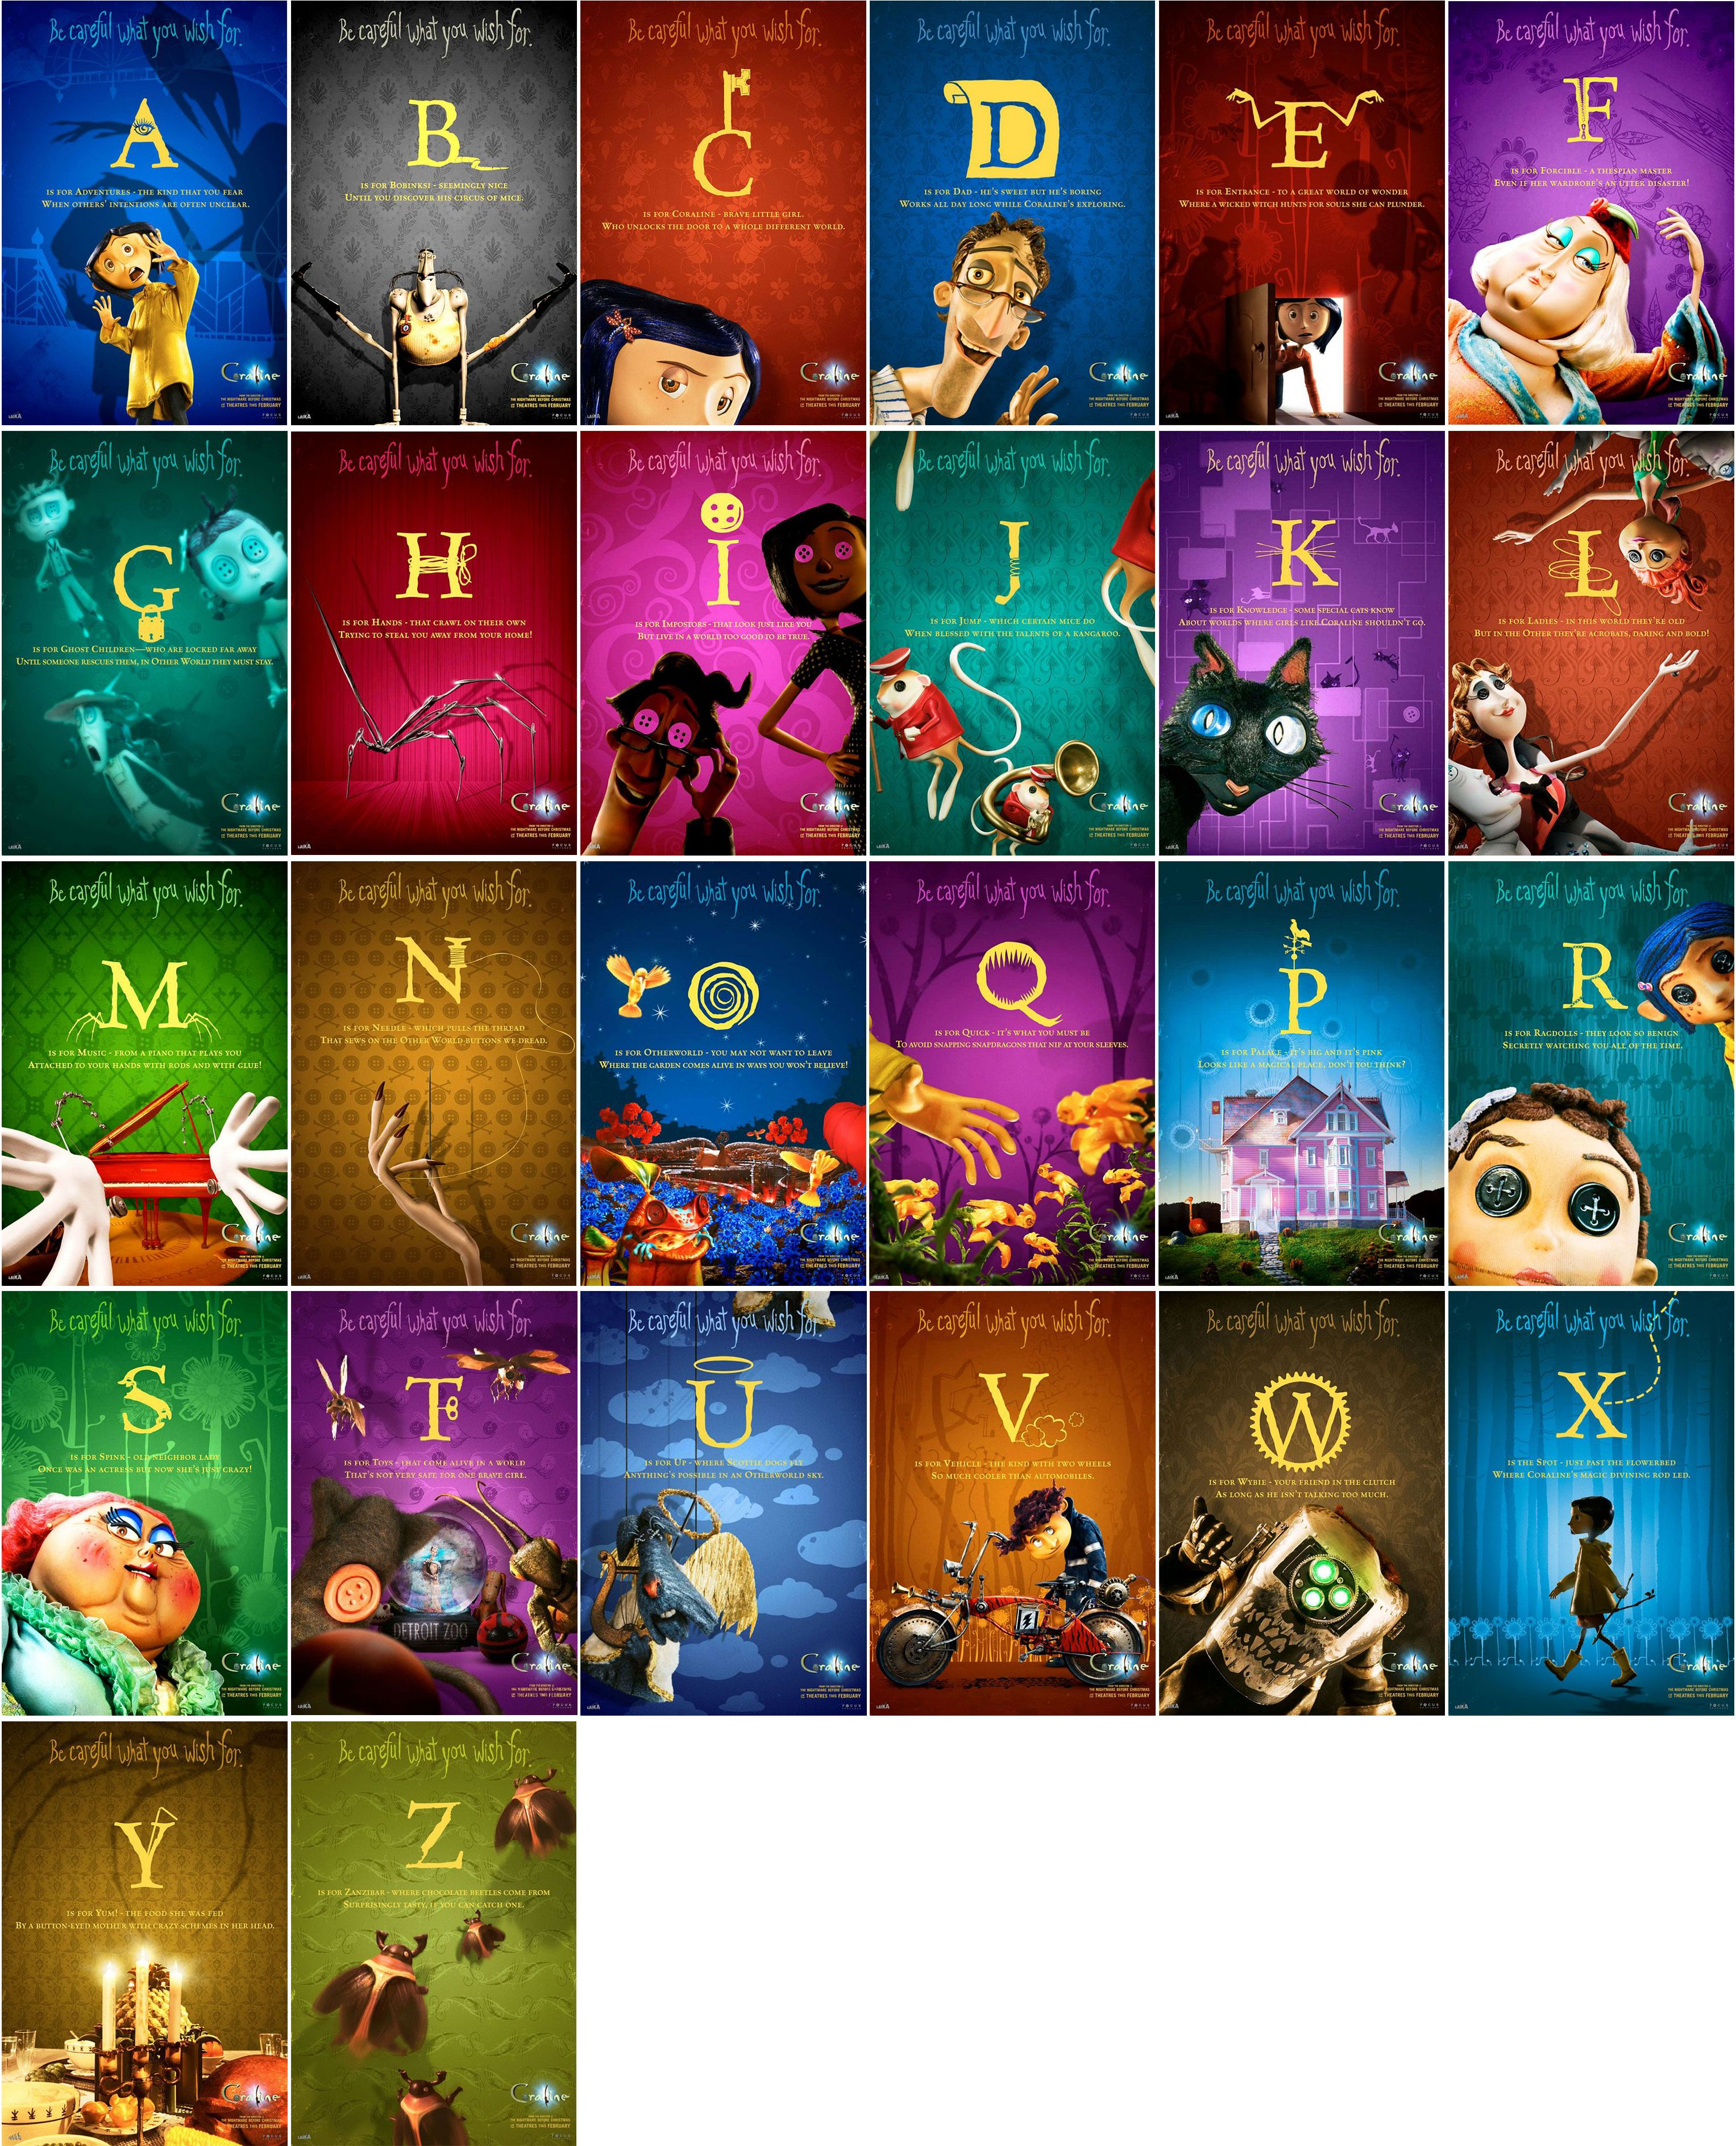 Coraline az character posters poster movie posters movies